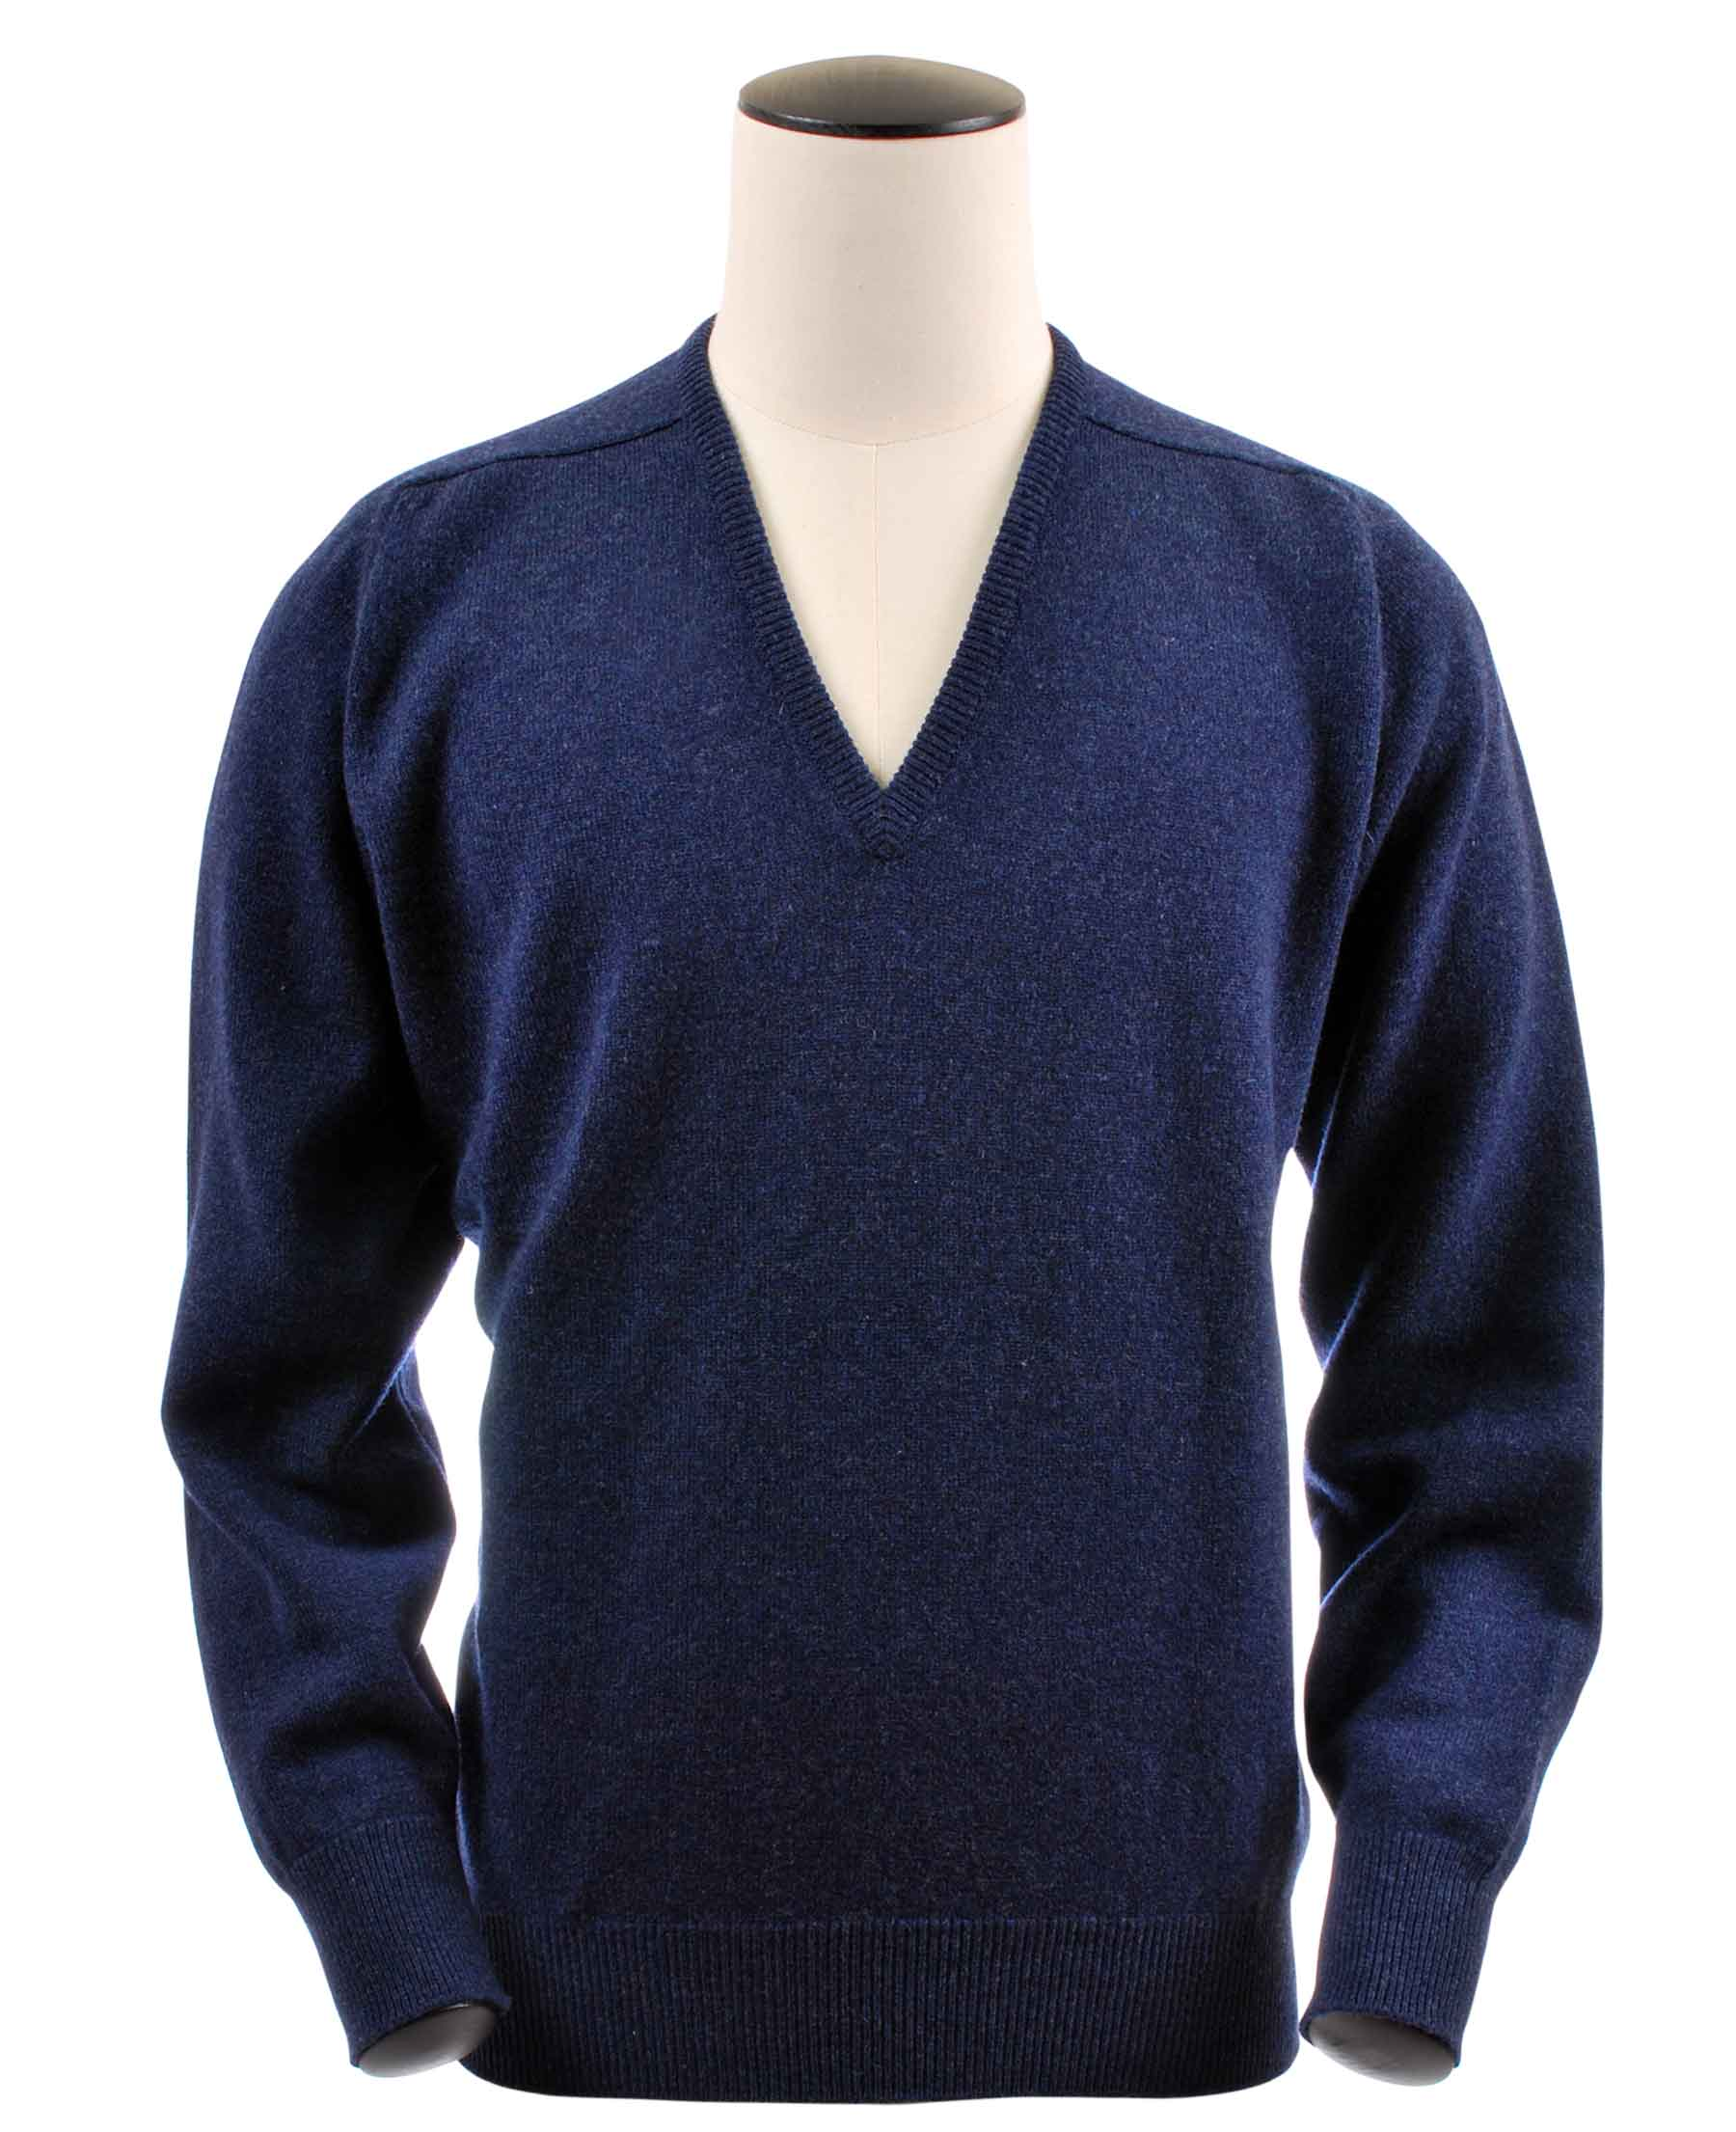 Pull col V, couleur Astra Blue en 100% lambswool,Scott - Vêtements laine geelong